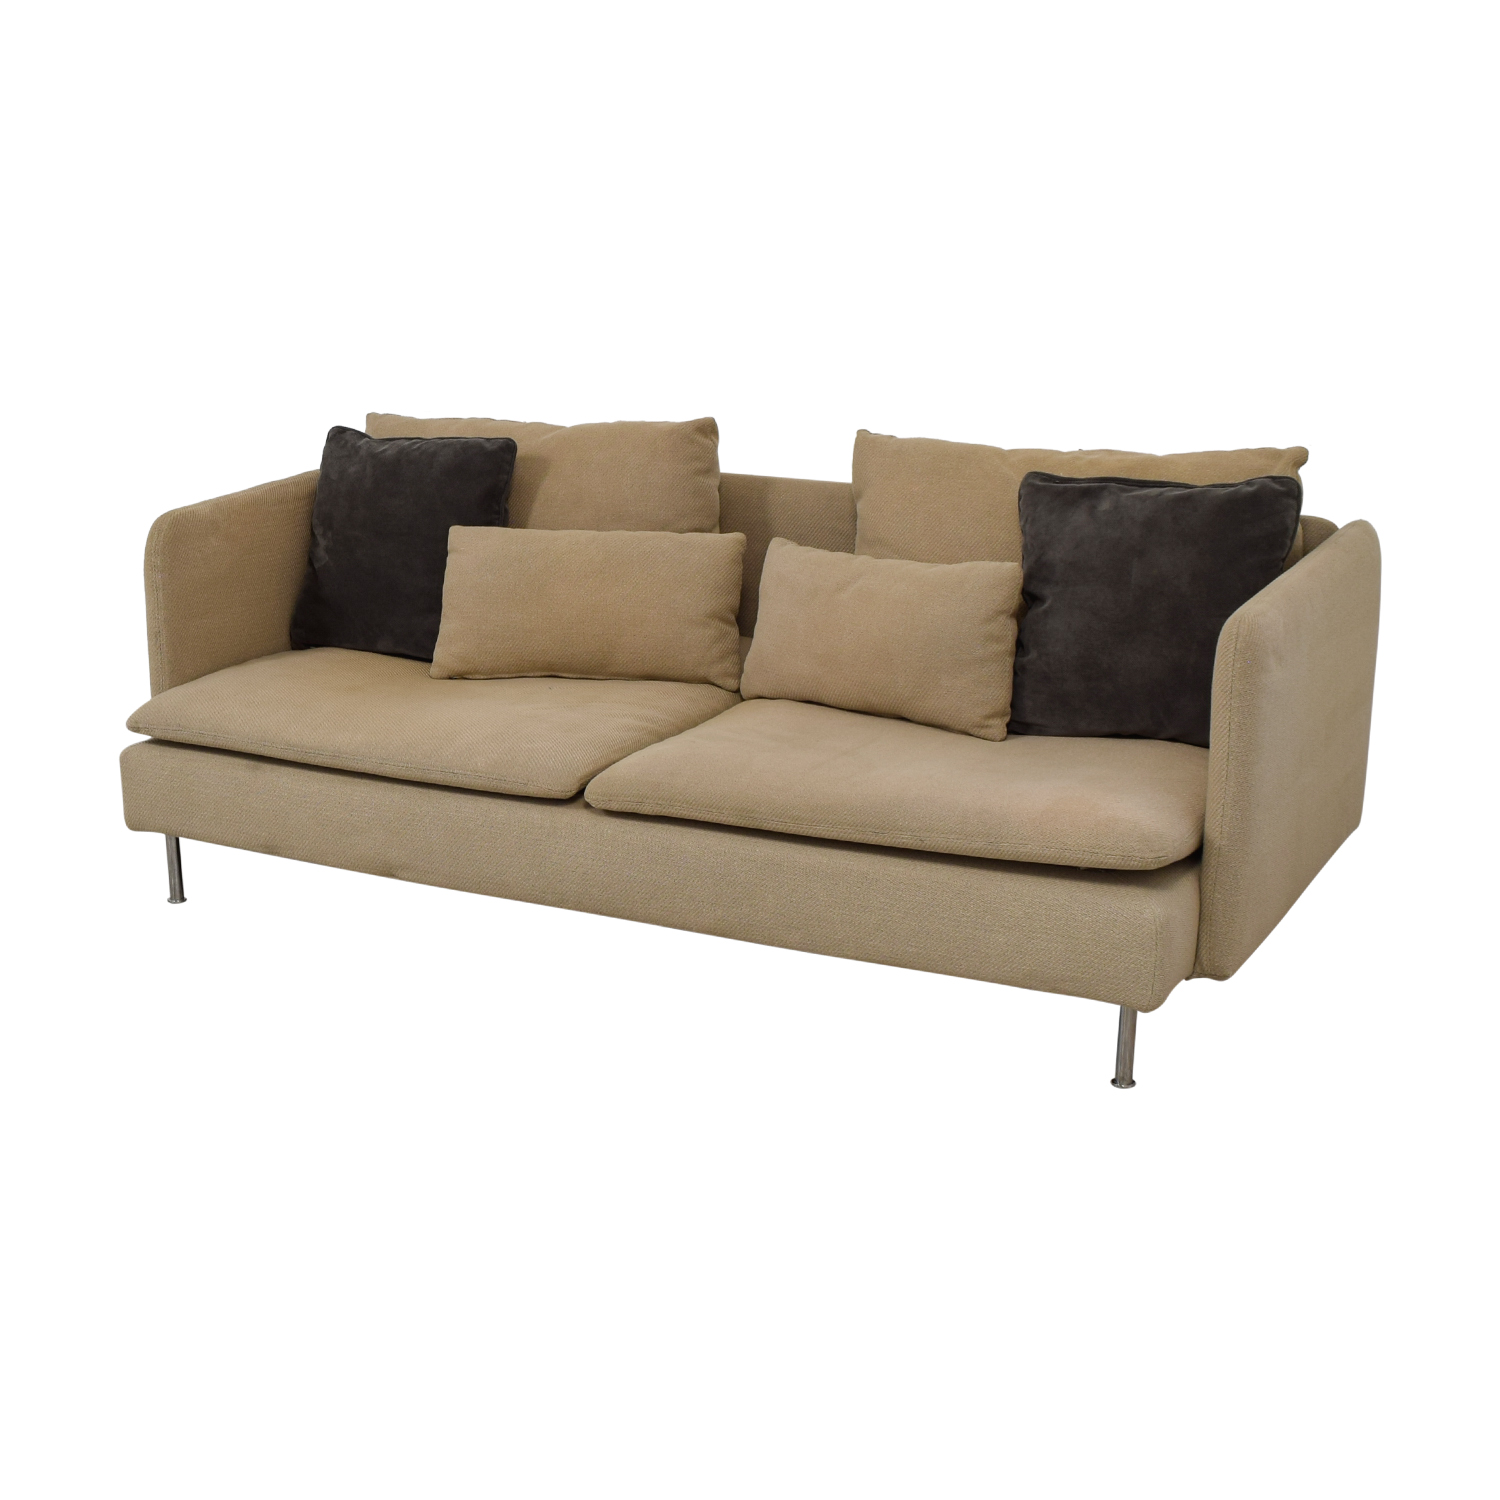 69 off ikea ikea soderhamn beige sofa sofas. Black Bedroom Furniture Sets. Home Design Ideas